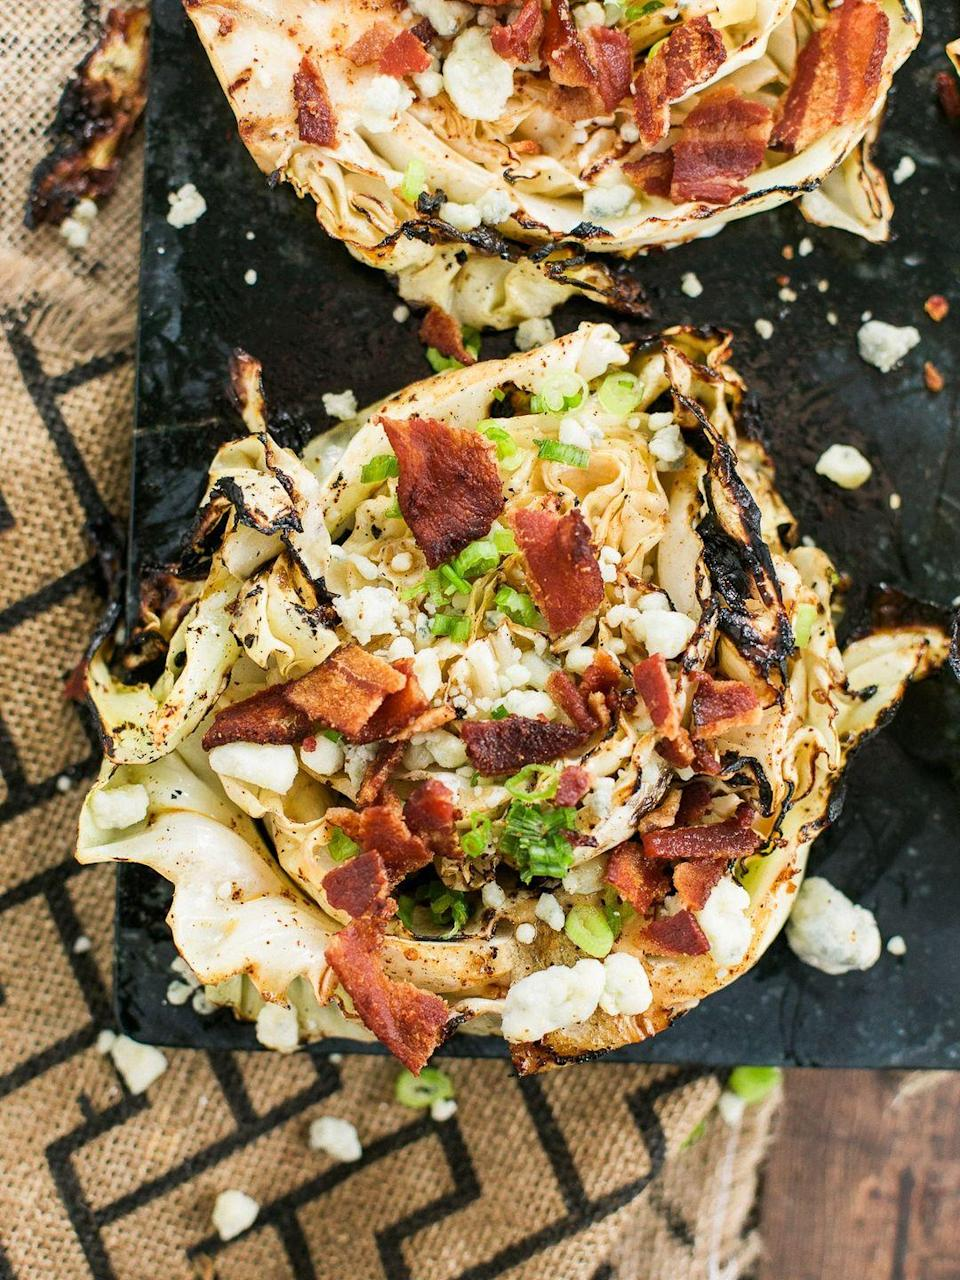 """<p>Even the carnivores will love this!</p><p>Get the recipe from <a href=""""https://www.delish.com/cooking/recipe-ideas/a27544267/grilled-cabbage-steaks-recipe/"""" rel=""""nofollow noopener"""" target=""""_blank"""" data-ylk=""""slk:Delish"""" class=""""link rapid-noclick-resp"""">Delish</a>.</p>"""